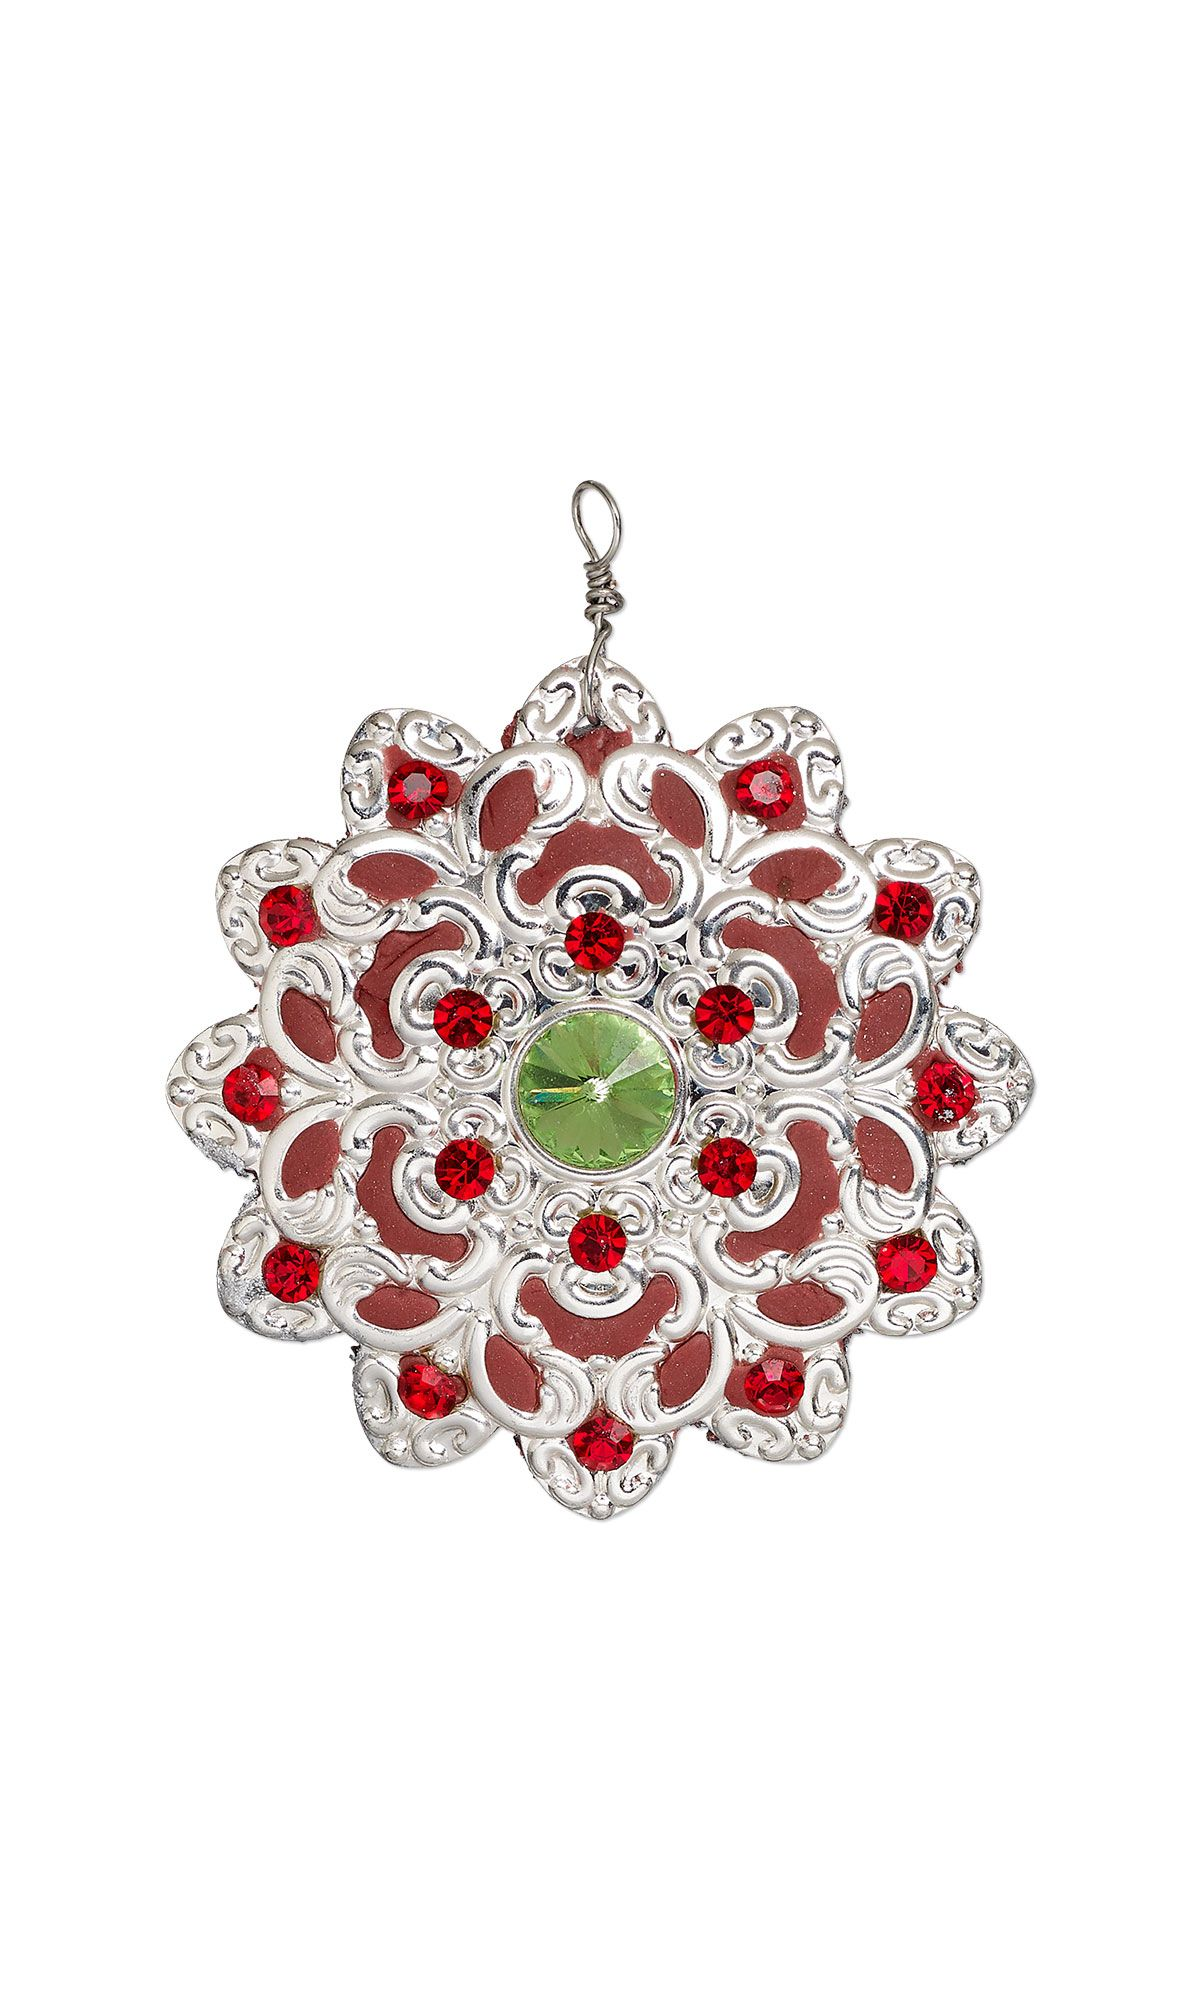 bdfe8309bfca Jewelry Design - Ornament with Silver-Plated Steel Focal